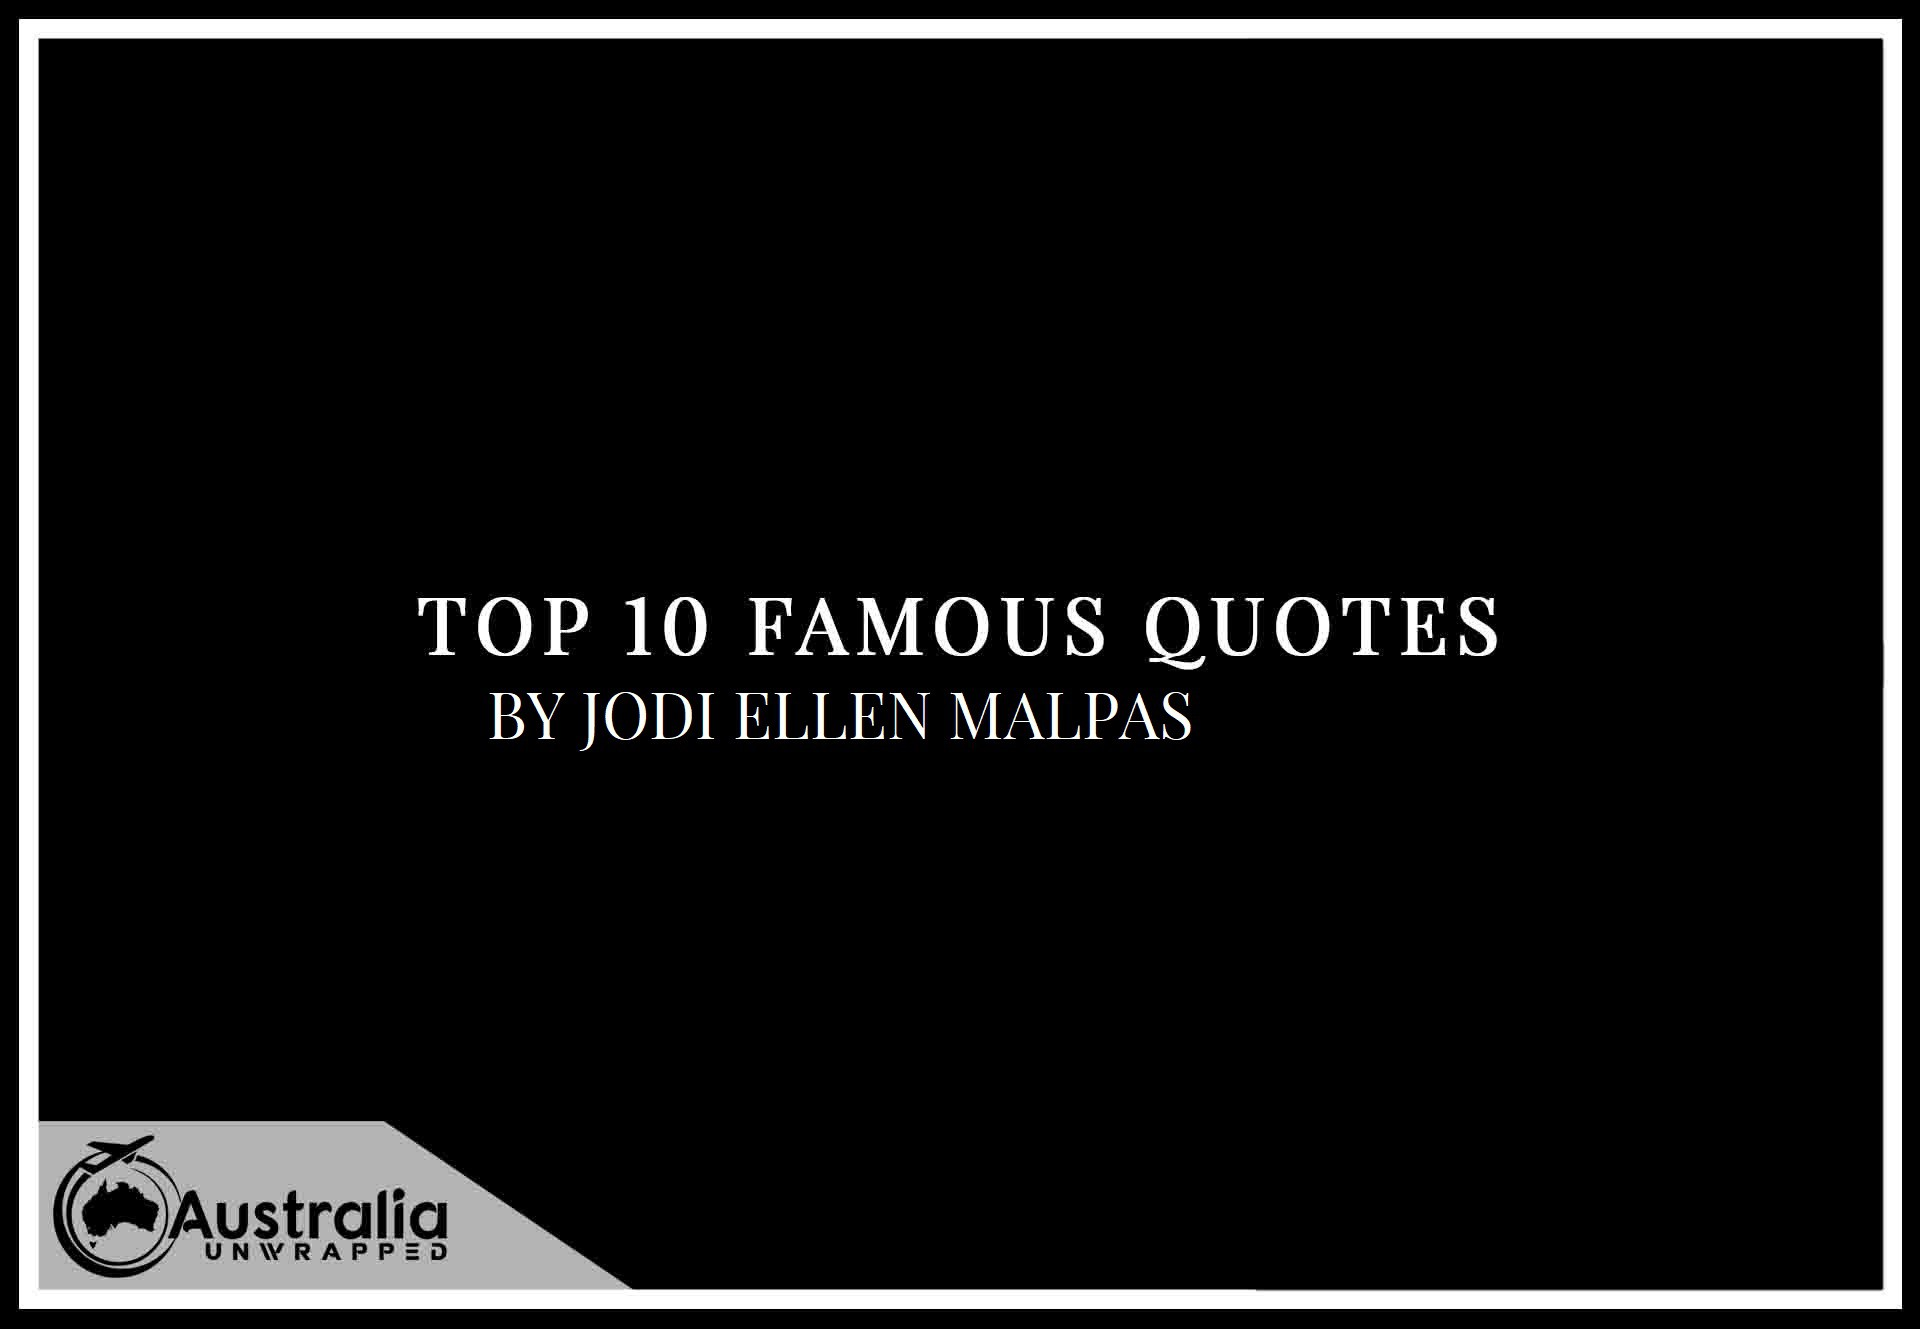 Top 10 Famous Quotes by Author Jodi Ellen Malpas